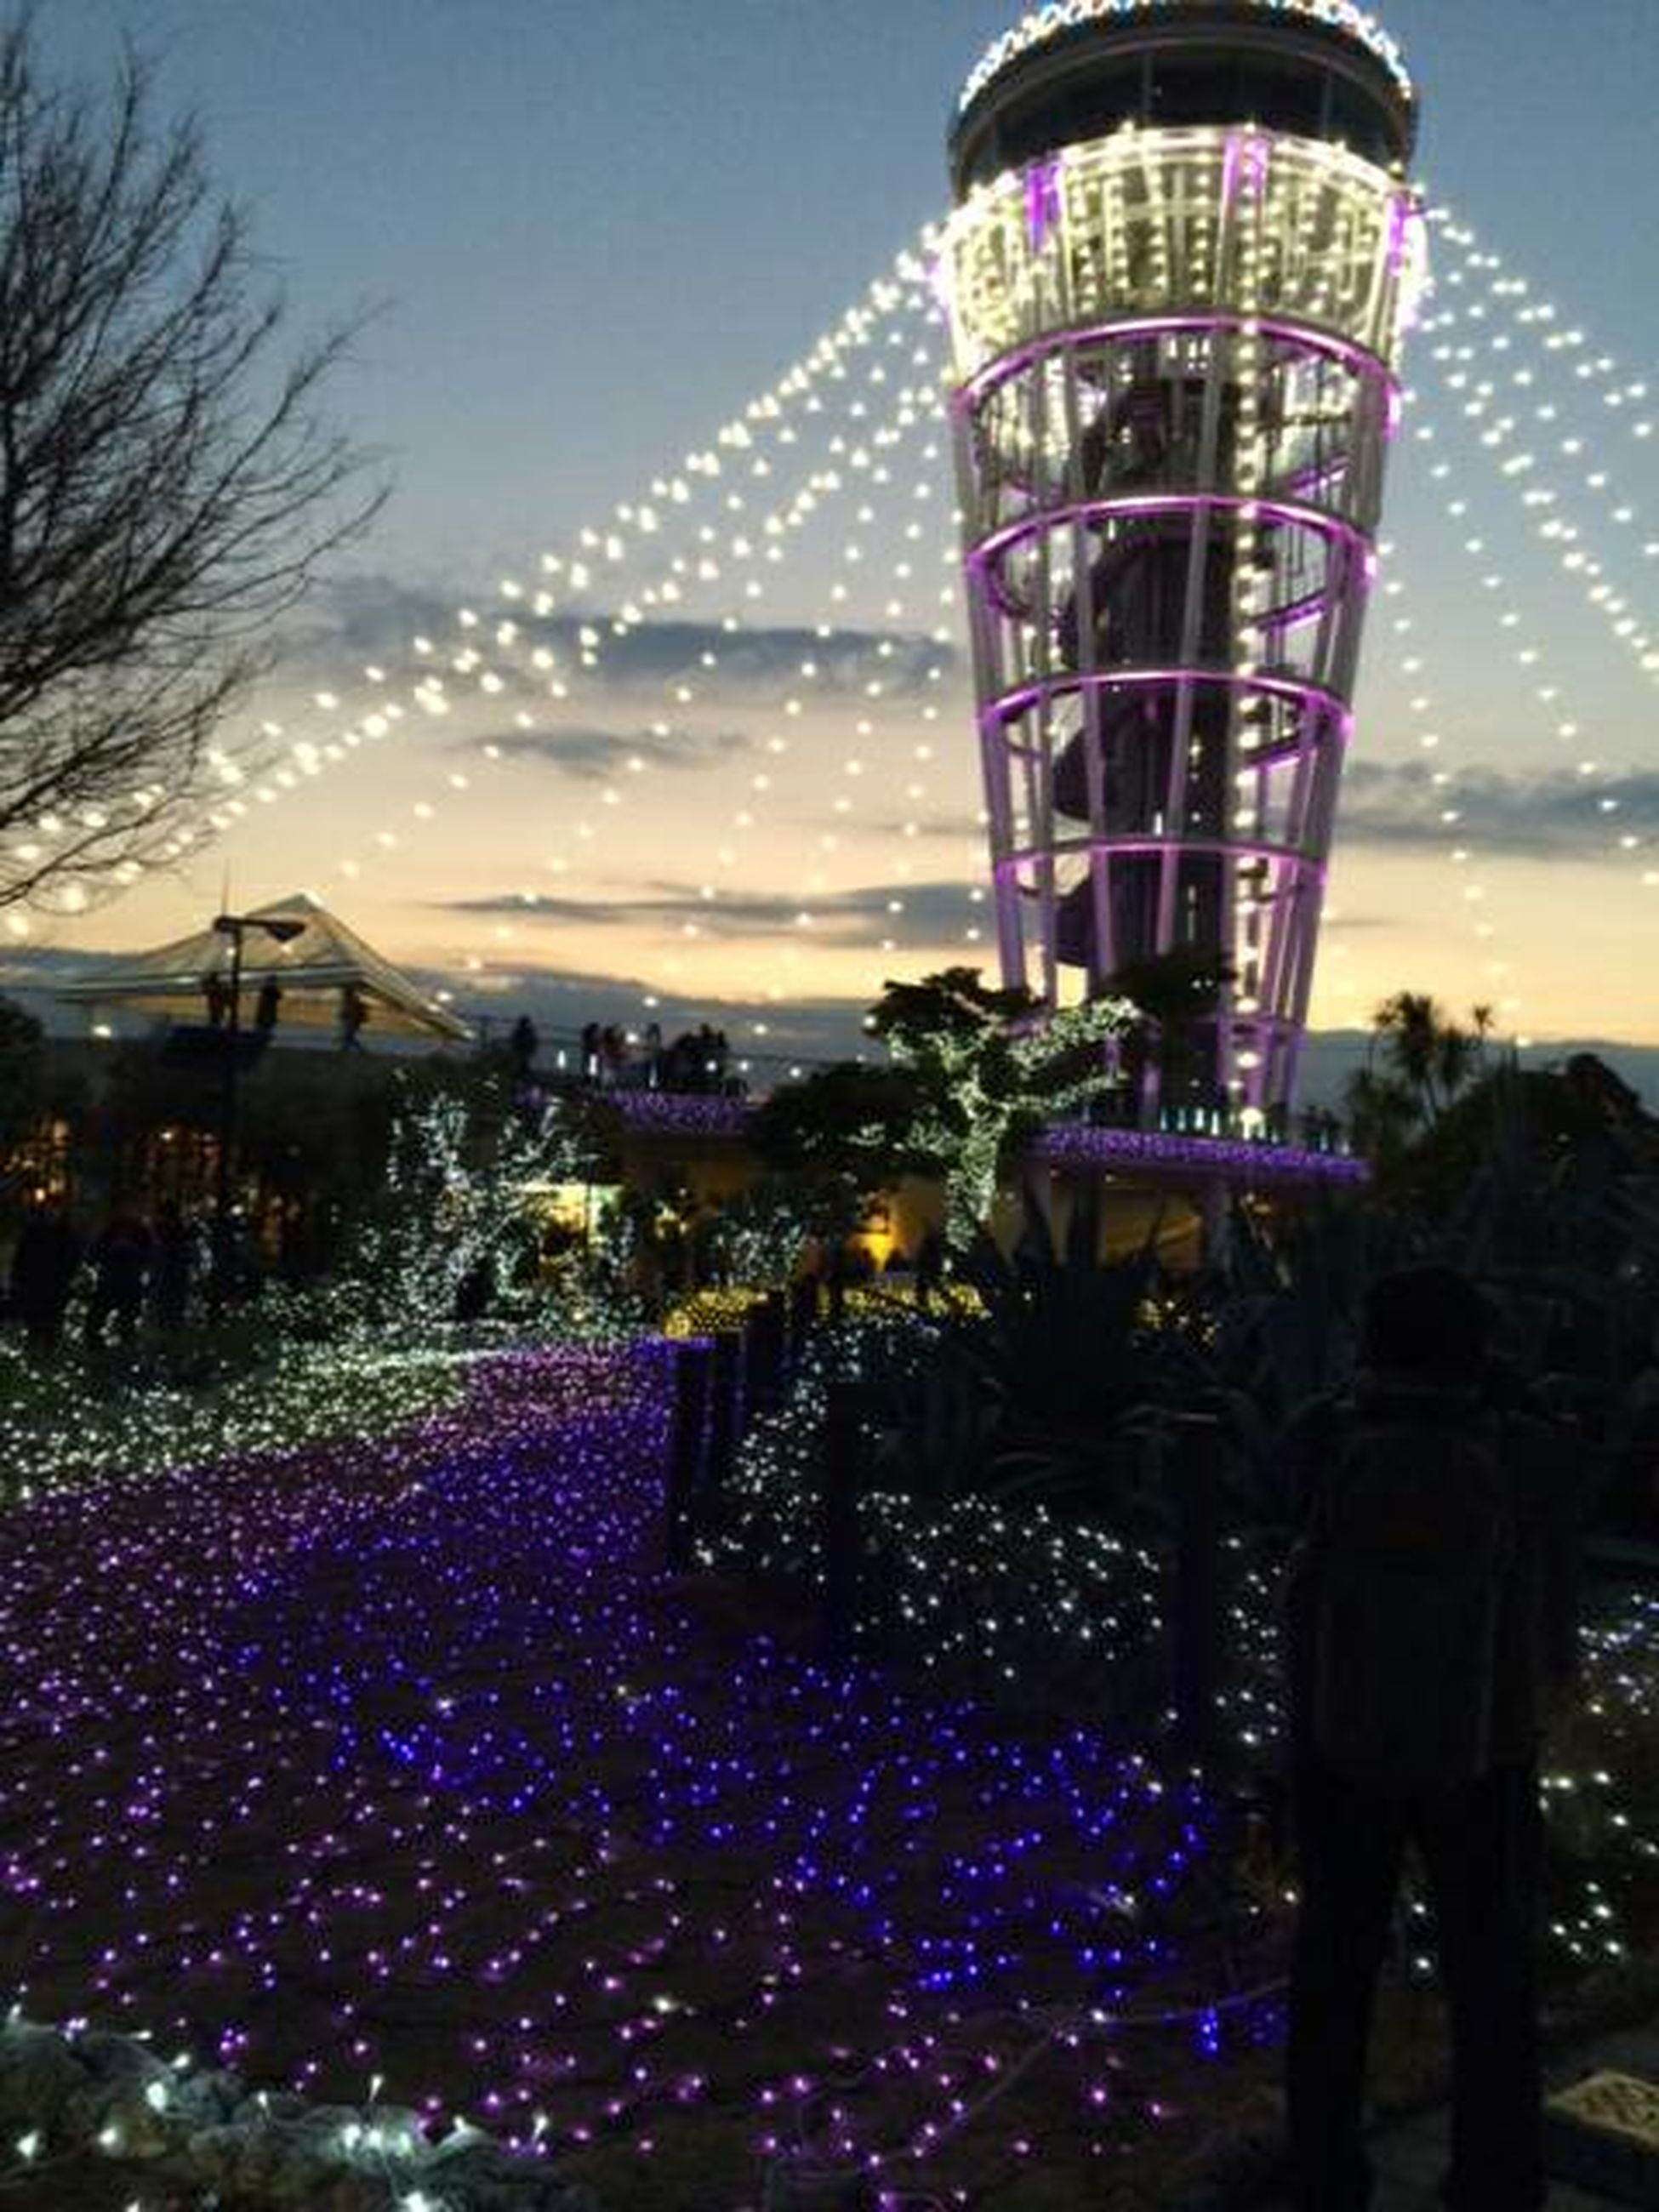 illuminated, sky, built structure, architecture, night, clear sky, building exterior, city, lighting equipment, leisure activity, dusk, tree, outdoors, amusement park ride, arts culture and entertainment, amusement park, ferris wheel, incidental people, travel destinations